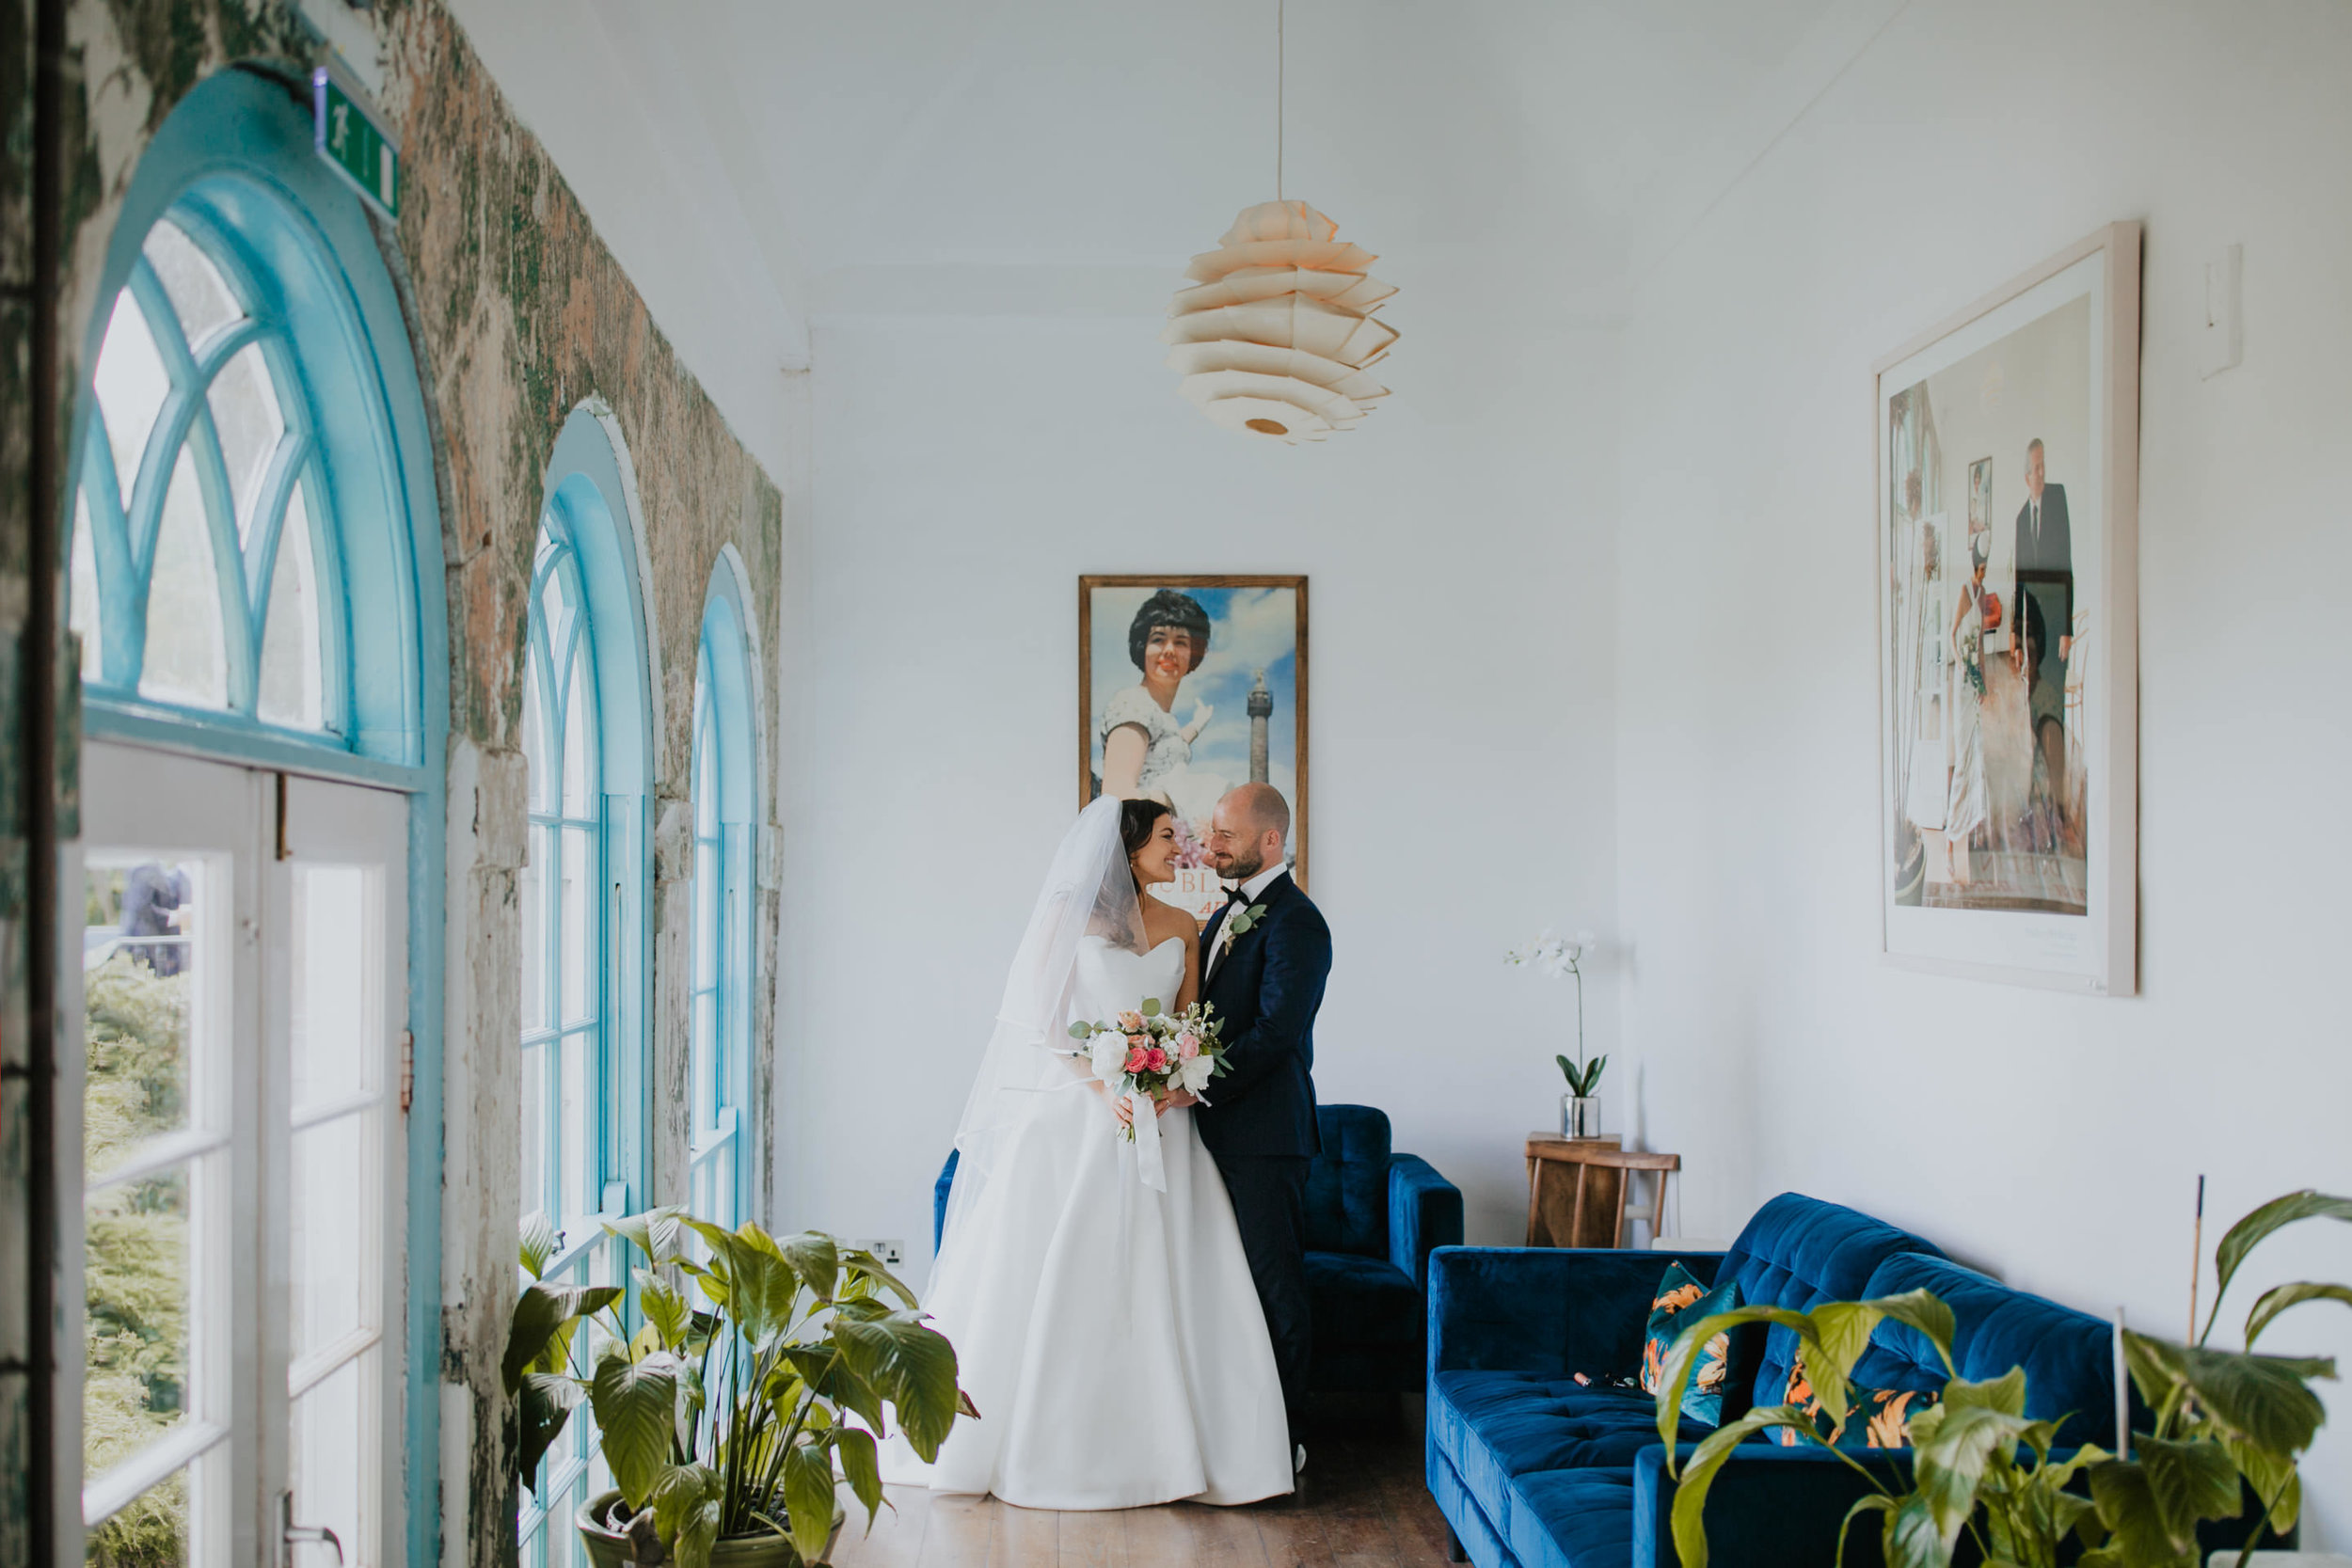 luxury_wedding_bellinter_house_photographer_livia_figueiredo_13.jpg